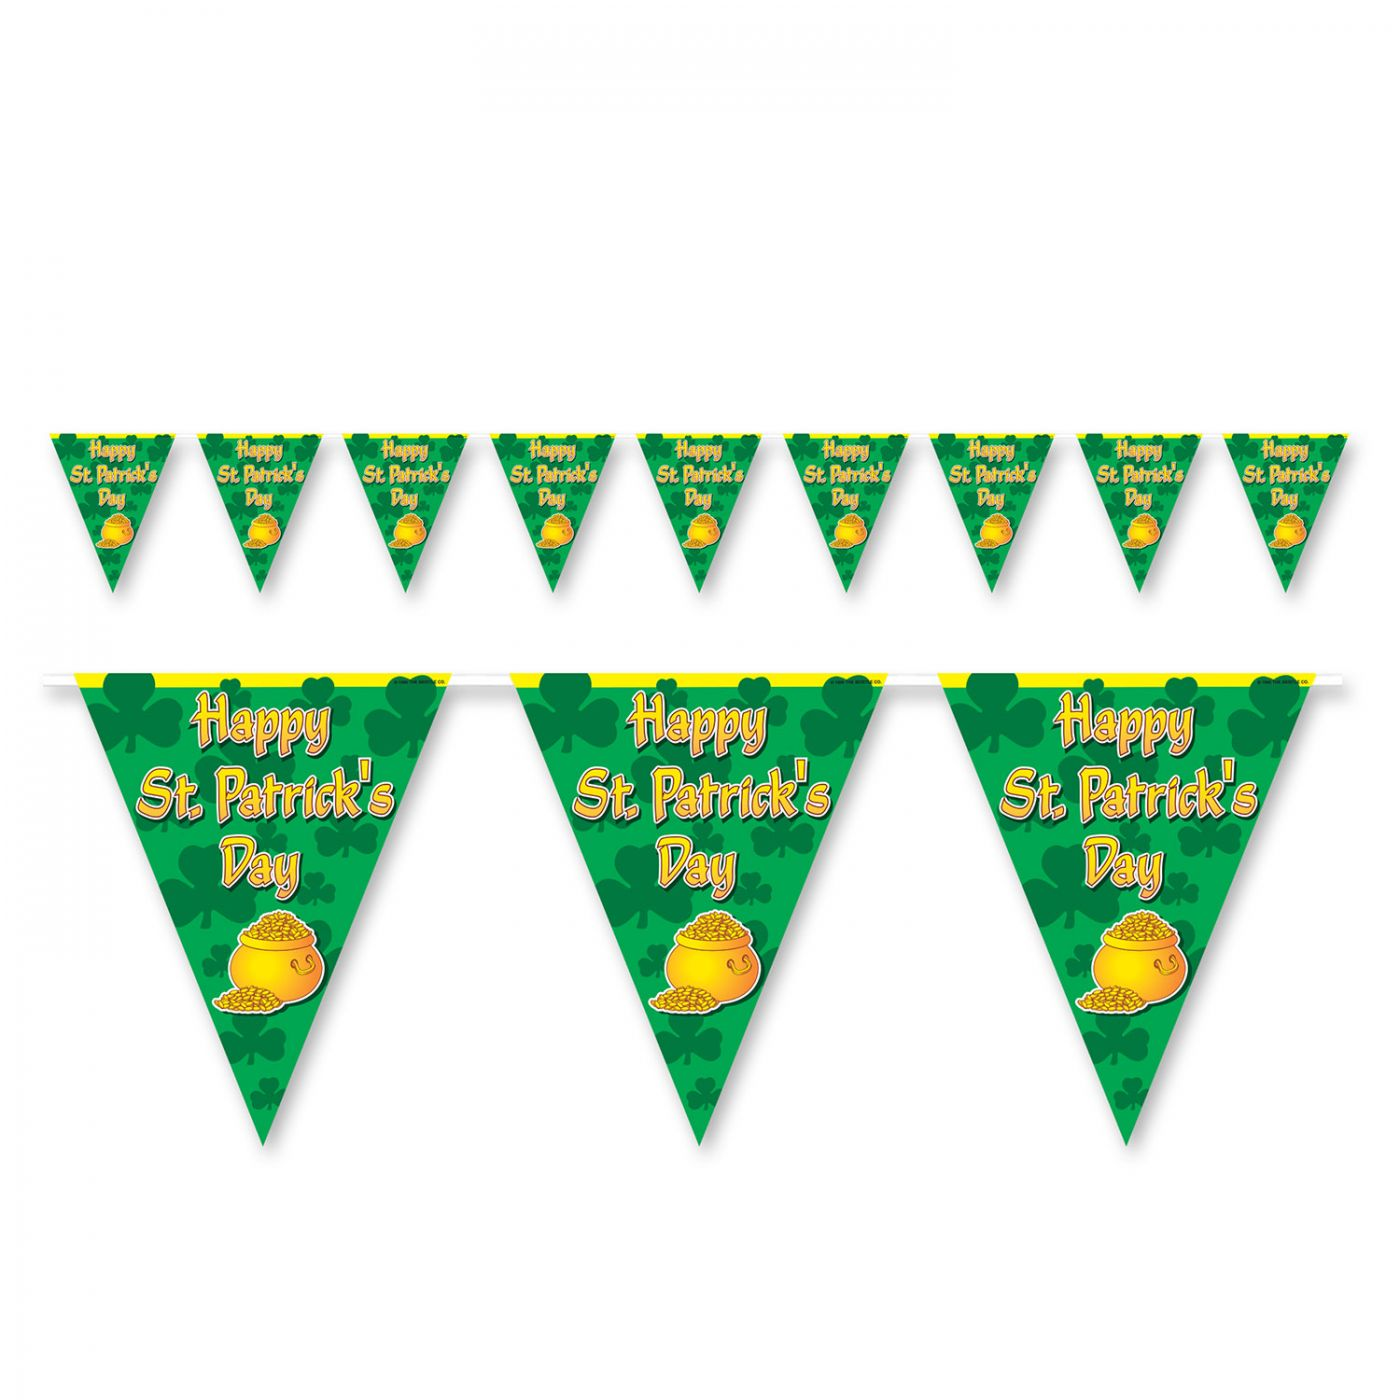 Happy St Patrick's Day Pennant Banner image